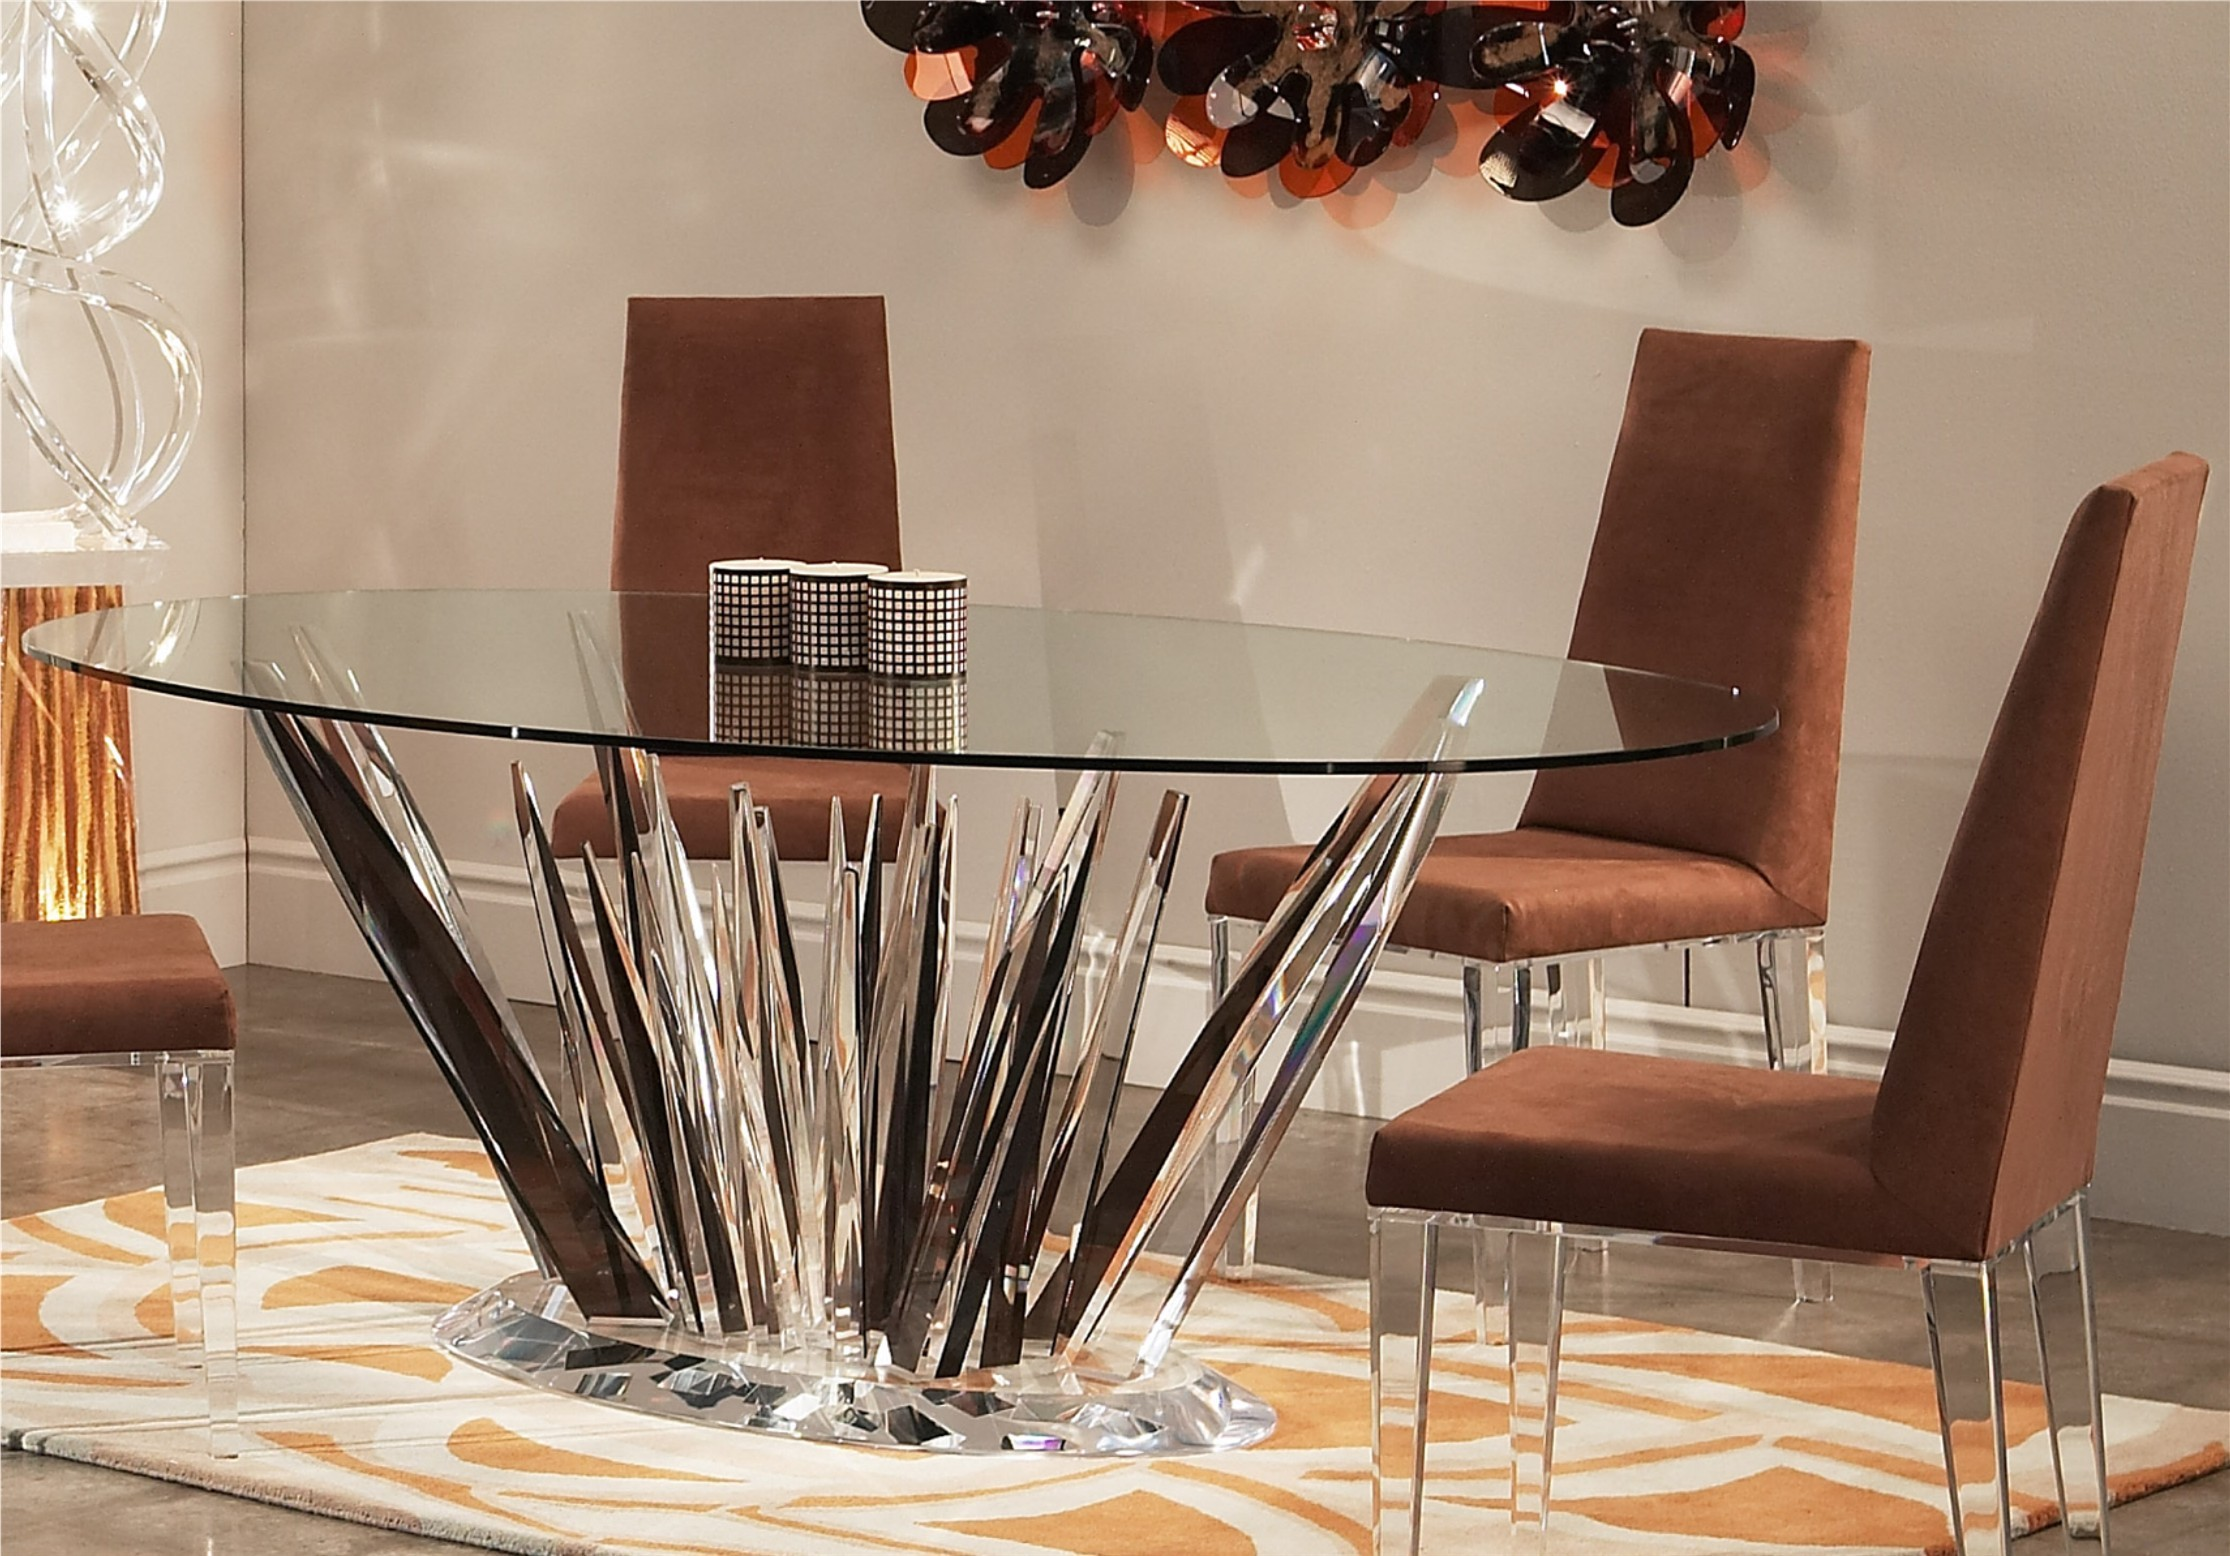 Elegant Acrylic Tables Designer Acrylic Table For Home